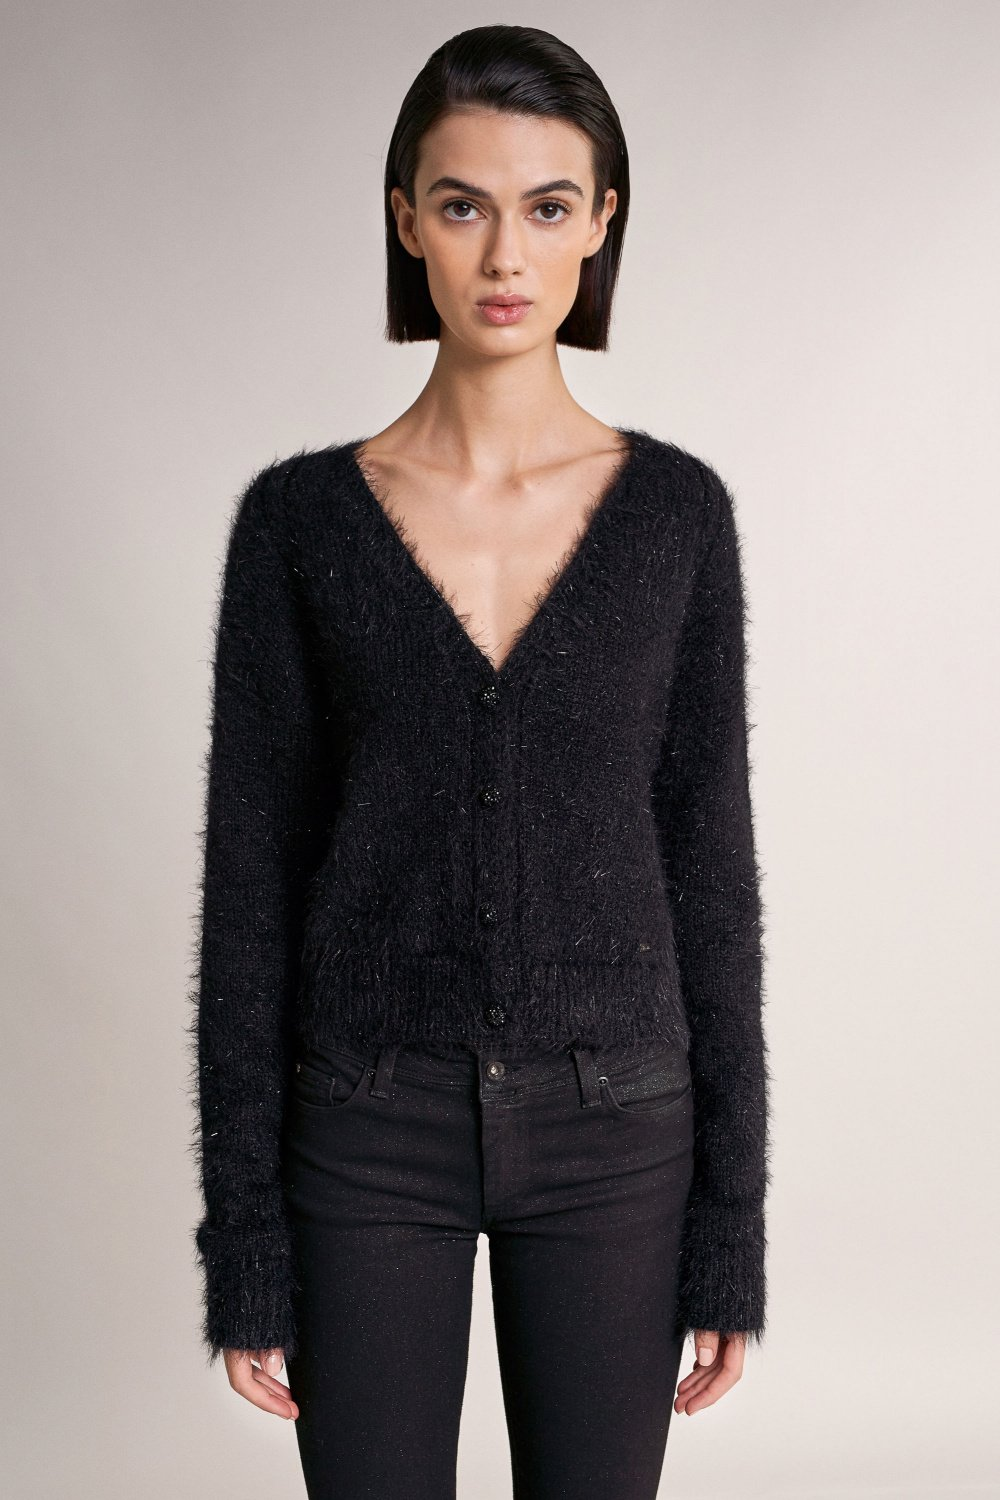 Mesh knit coat with buttons - Salsa